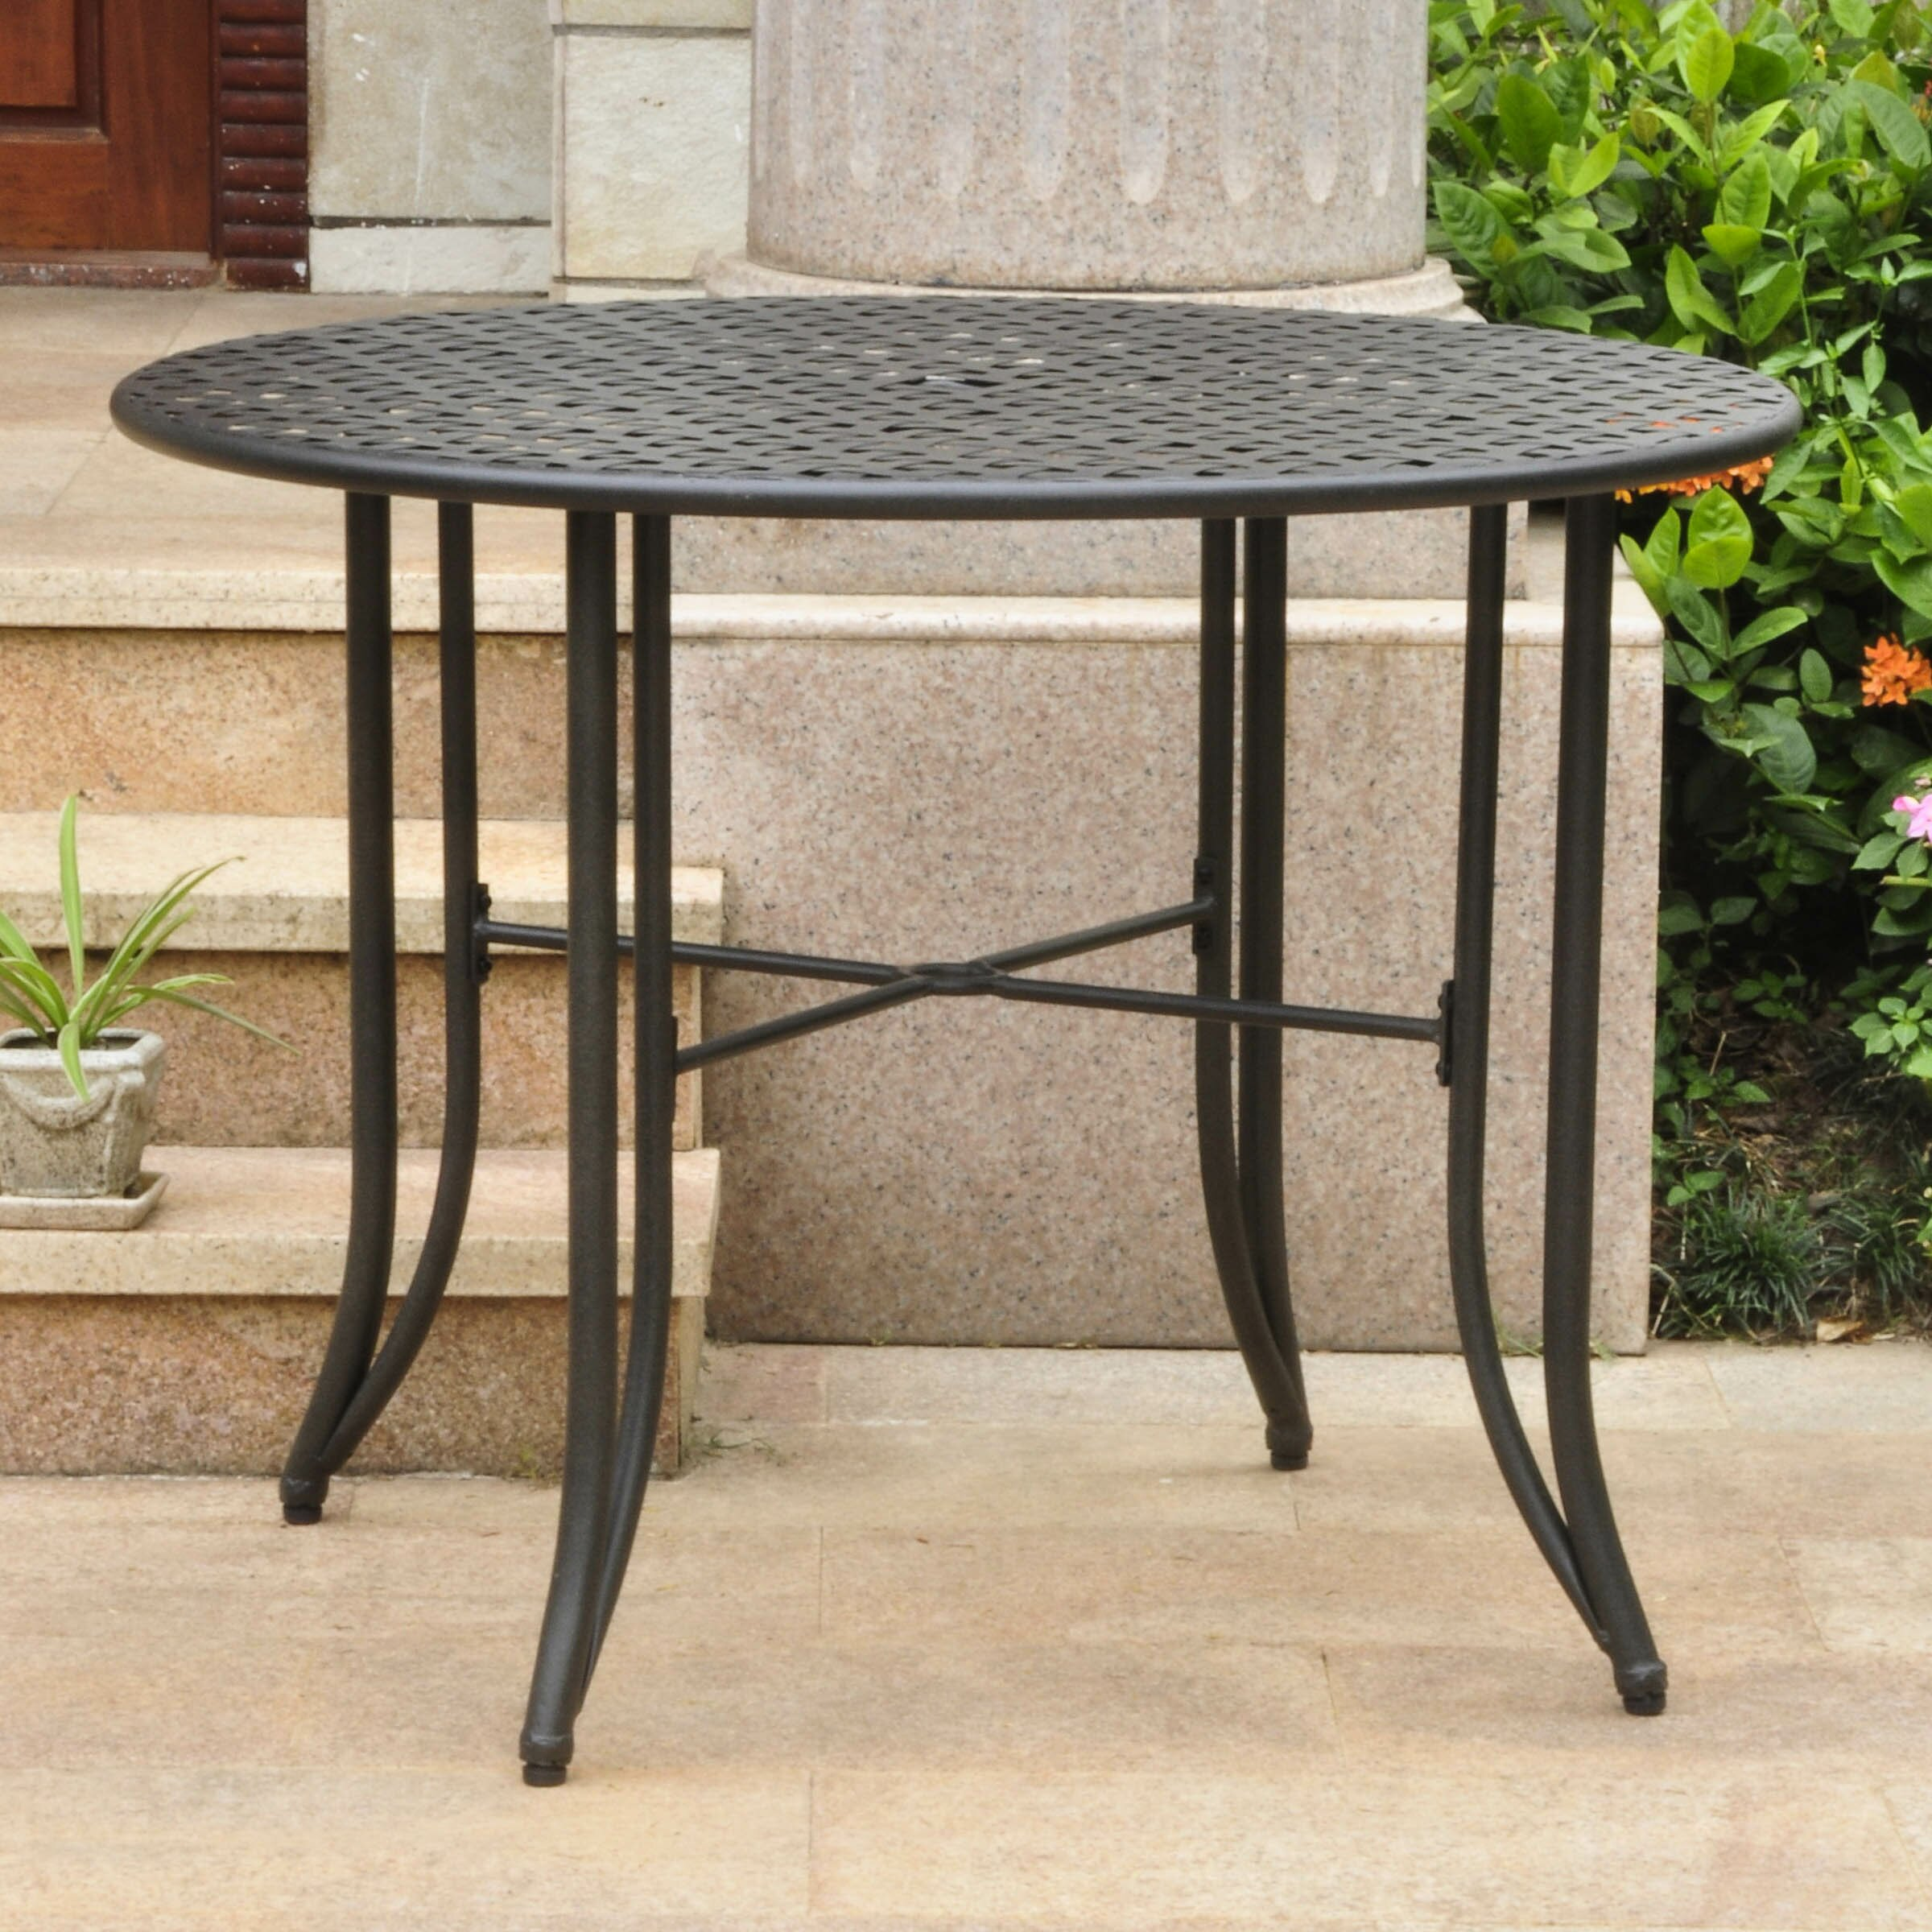 darby home co doric iron 39 round patio dining table reviews wayfair. Black Bedroom Furniture Sets. Home Design Ideas